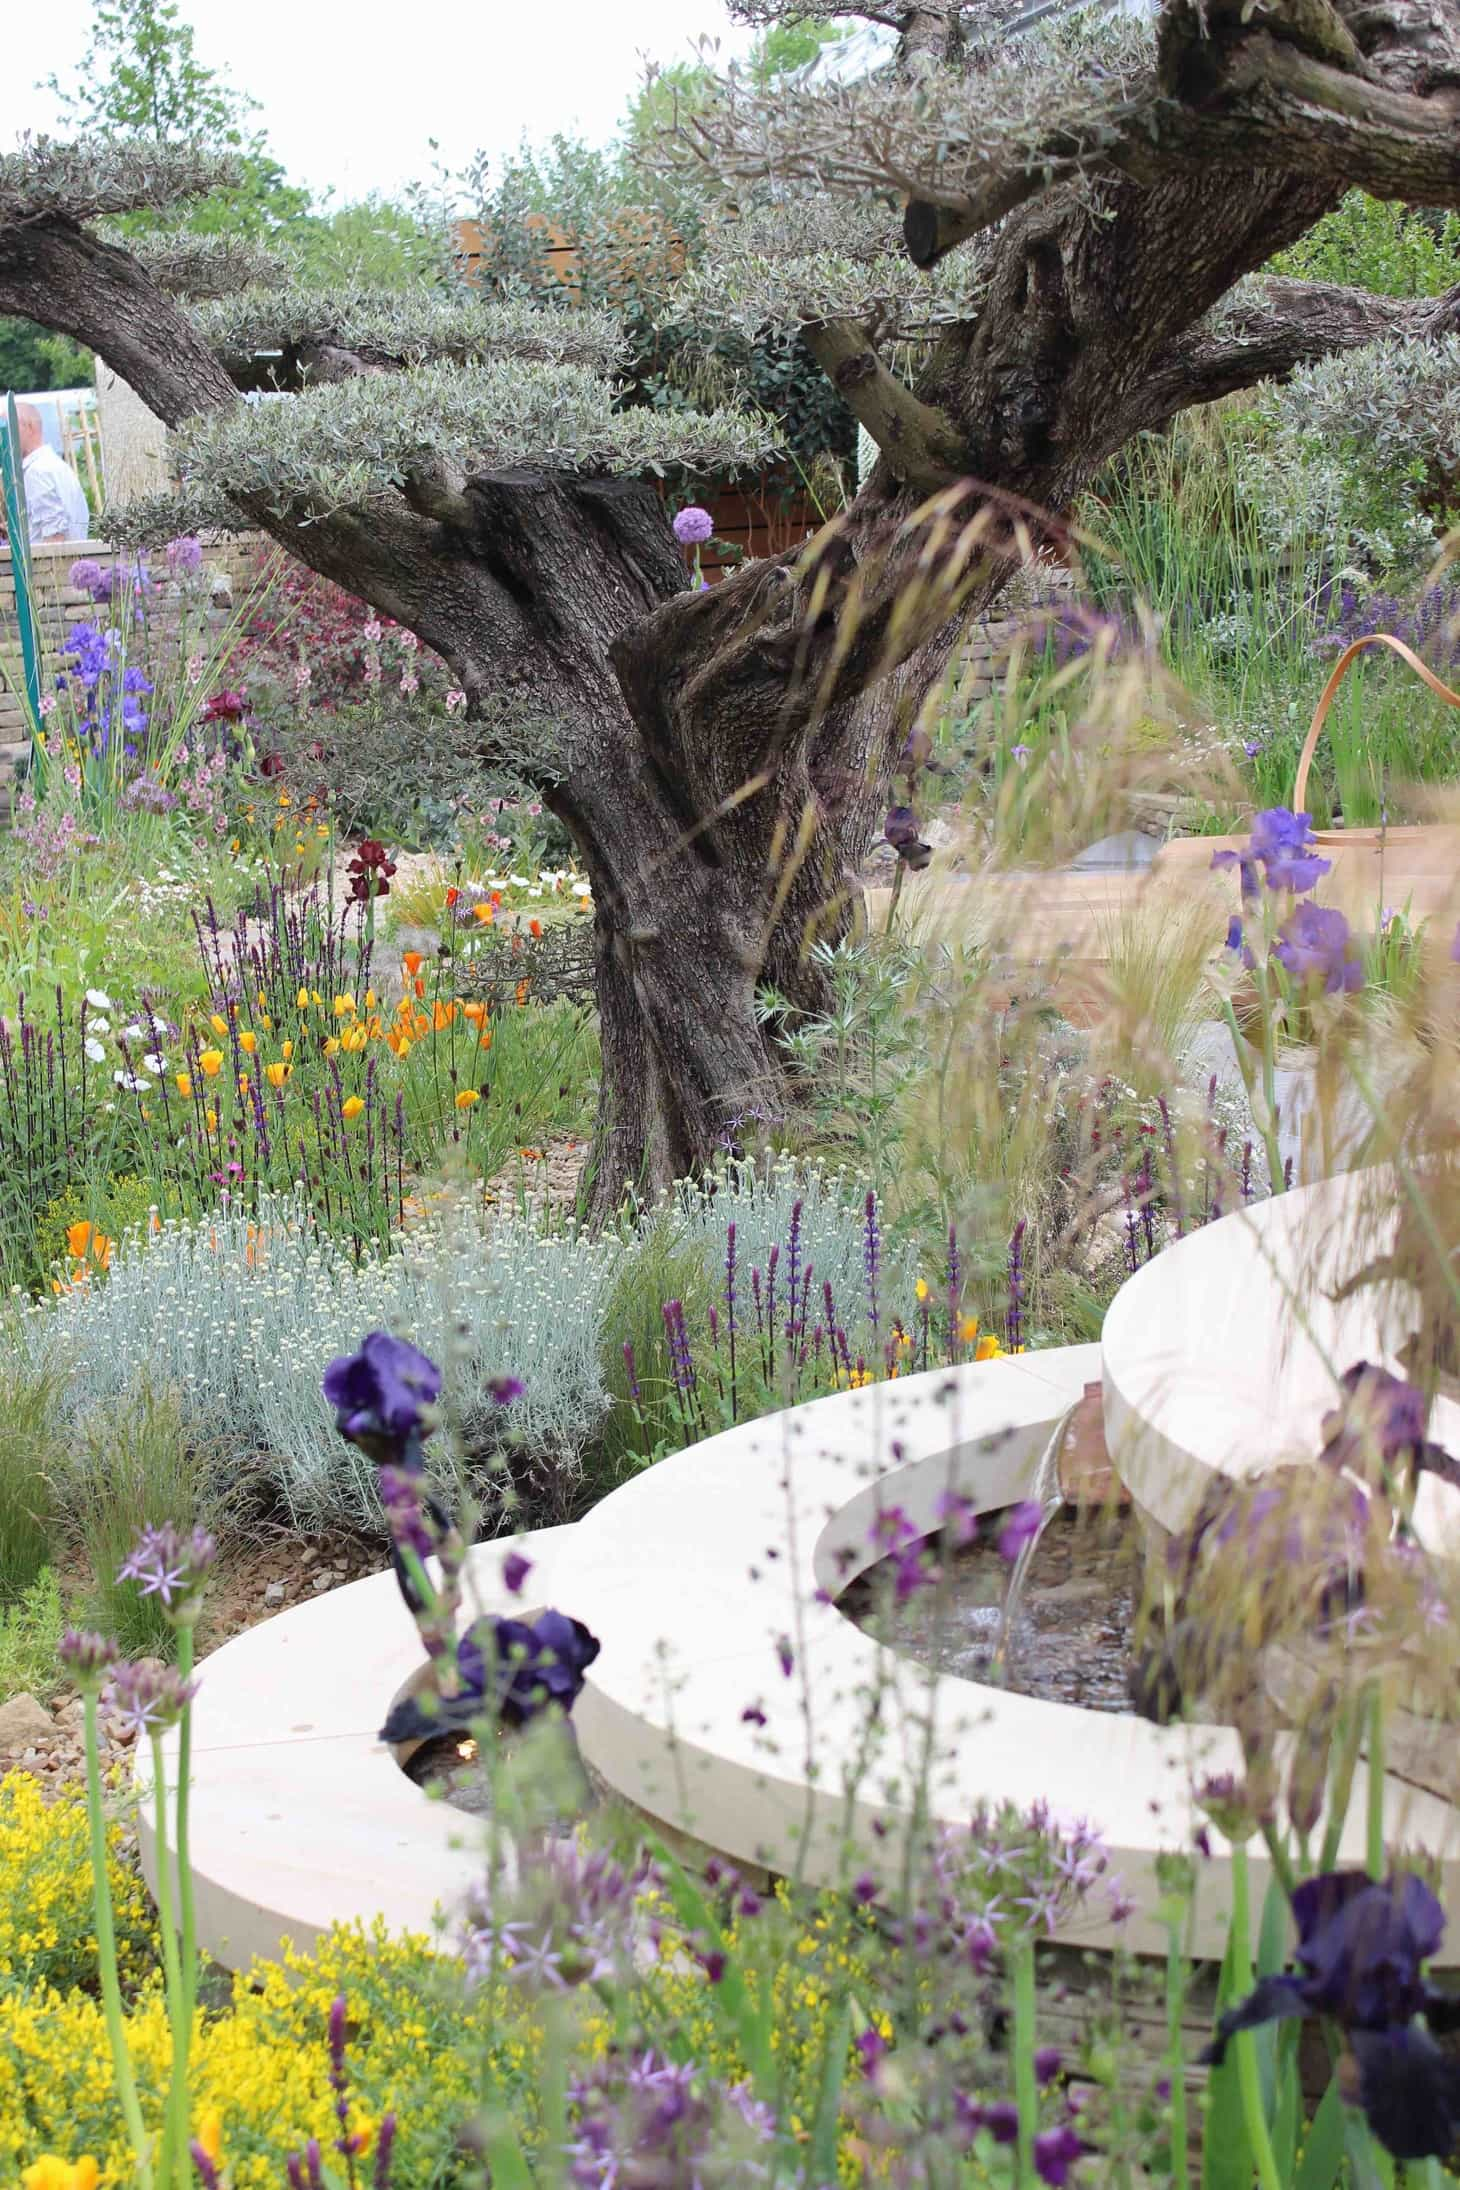 The homebase garden - urban retreat, Chelsea flower show 2015, adam frost, gold winner